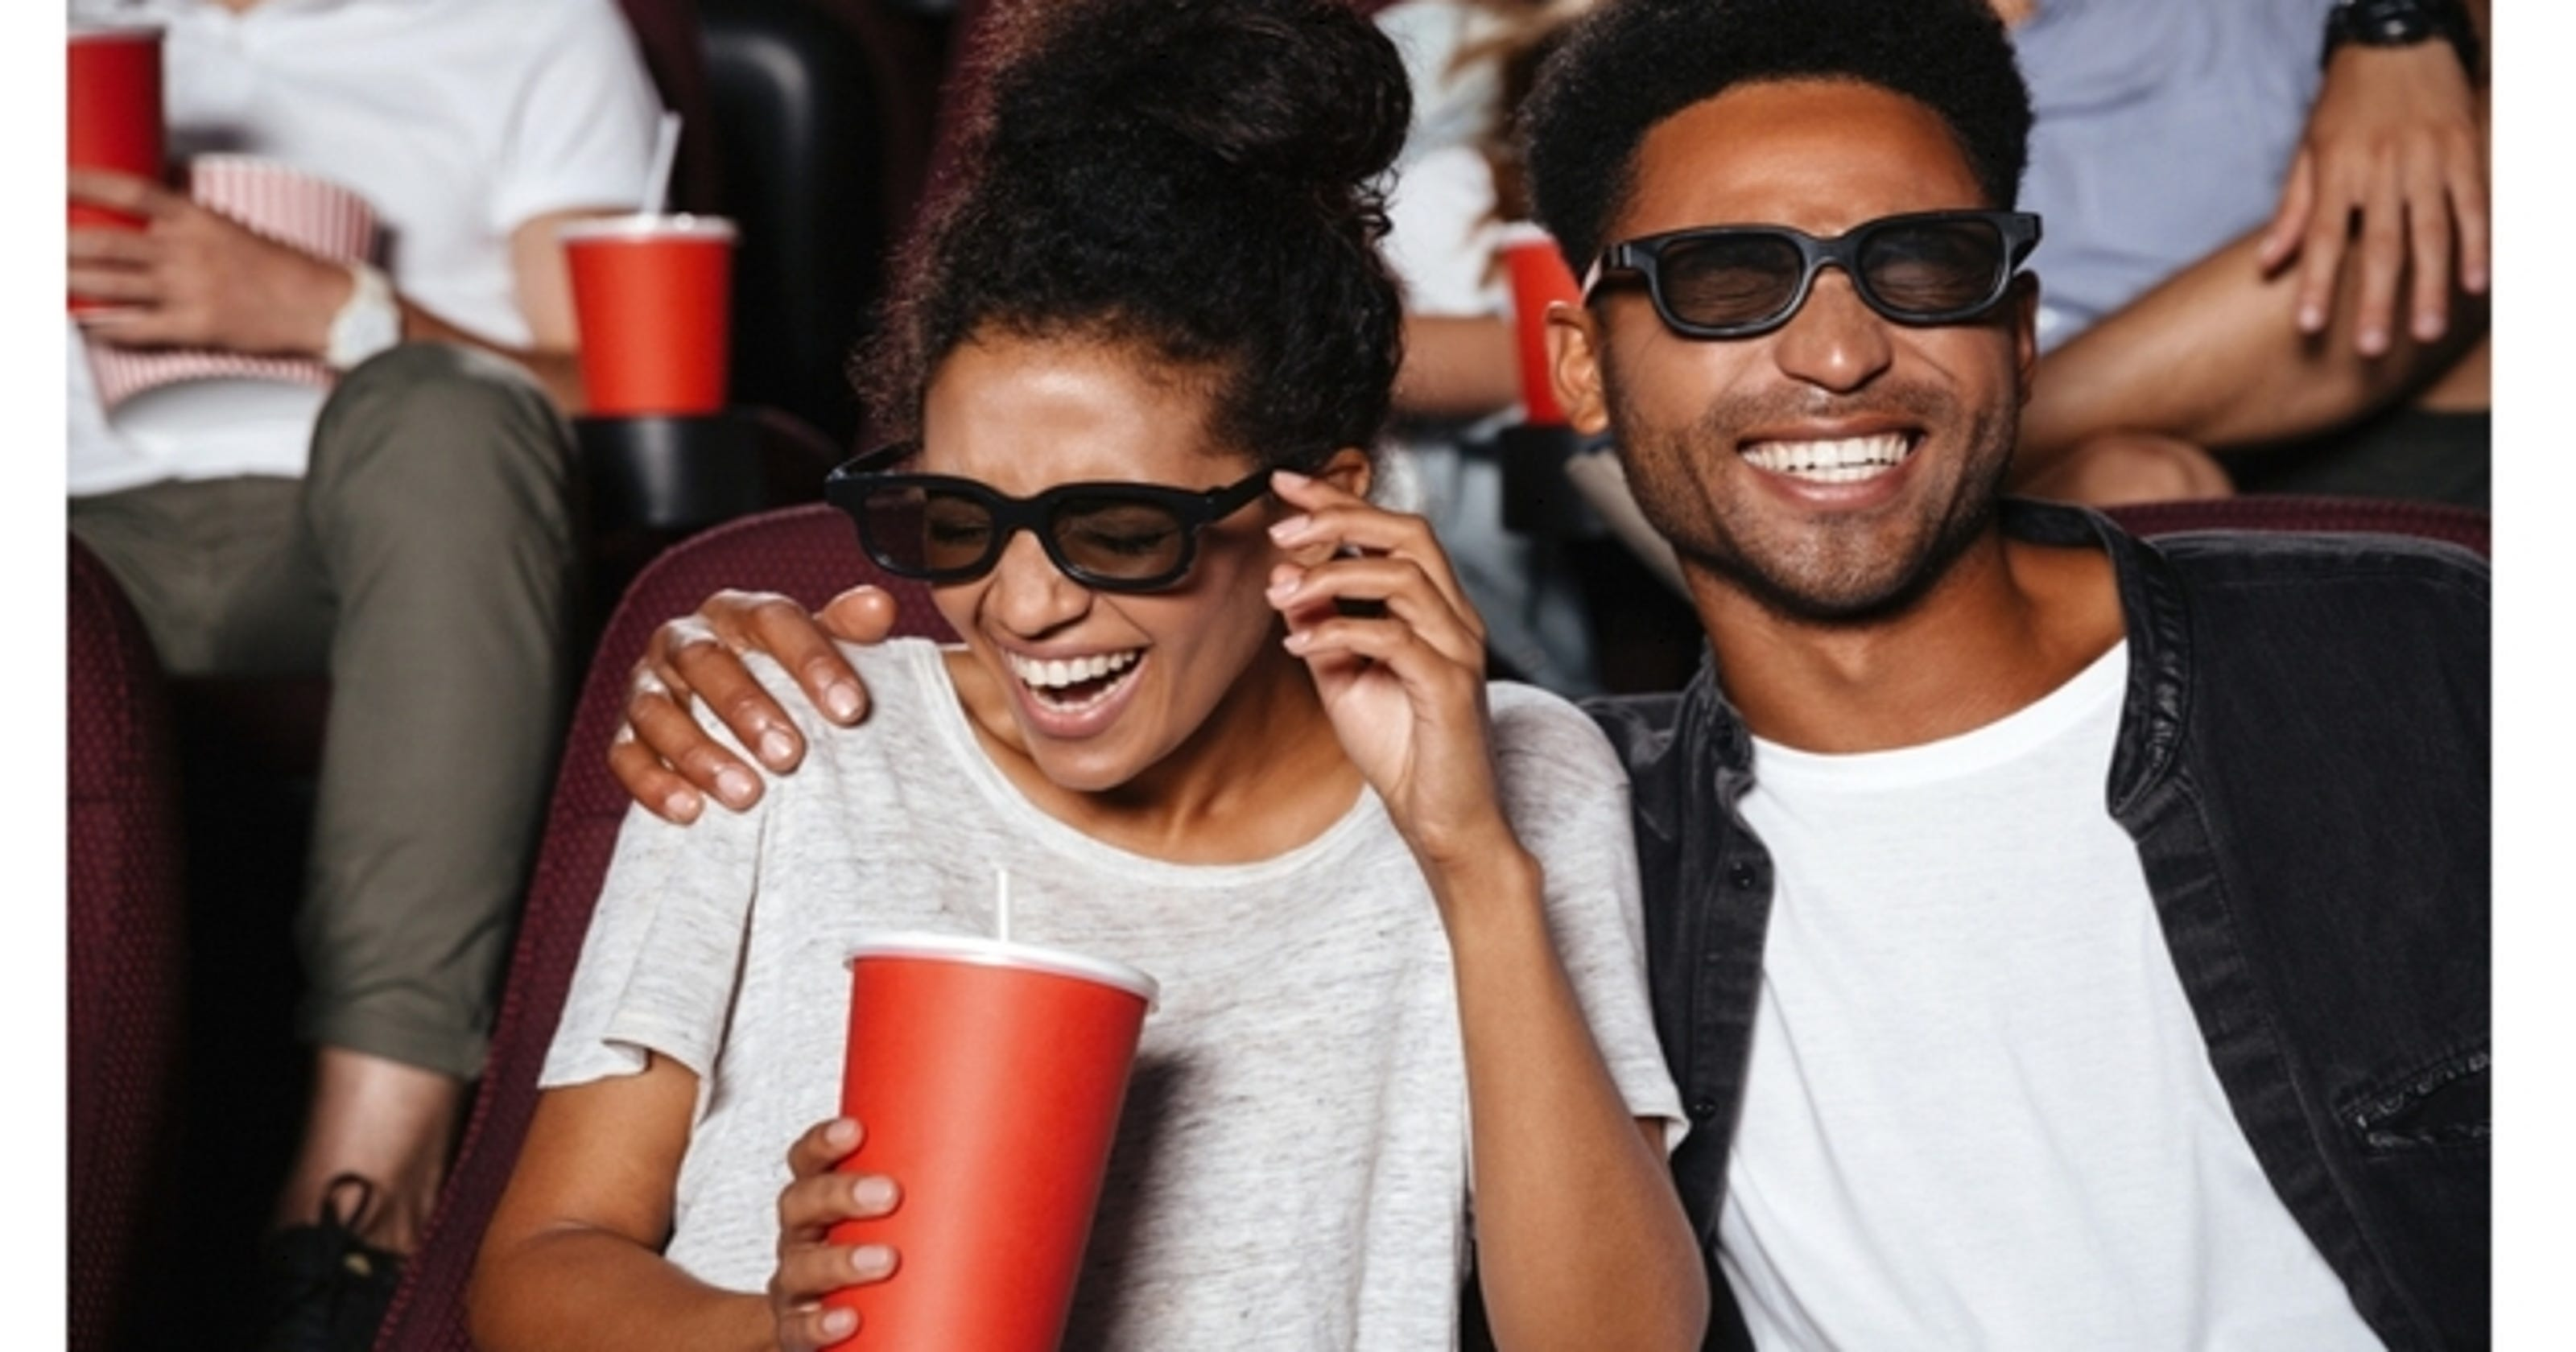 Get free movie tickets and special offers, including Fandango coupons and discount tickets. Keep up to date on the latest sweepstakes and free gifts.